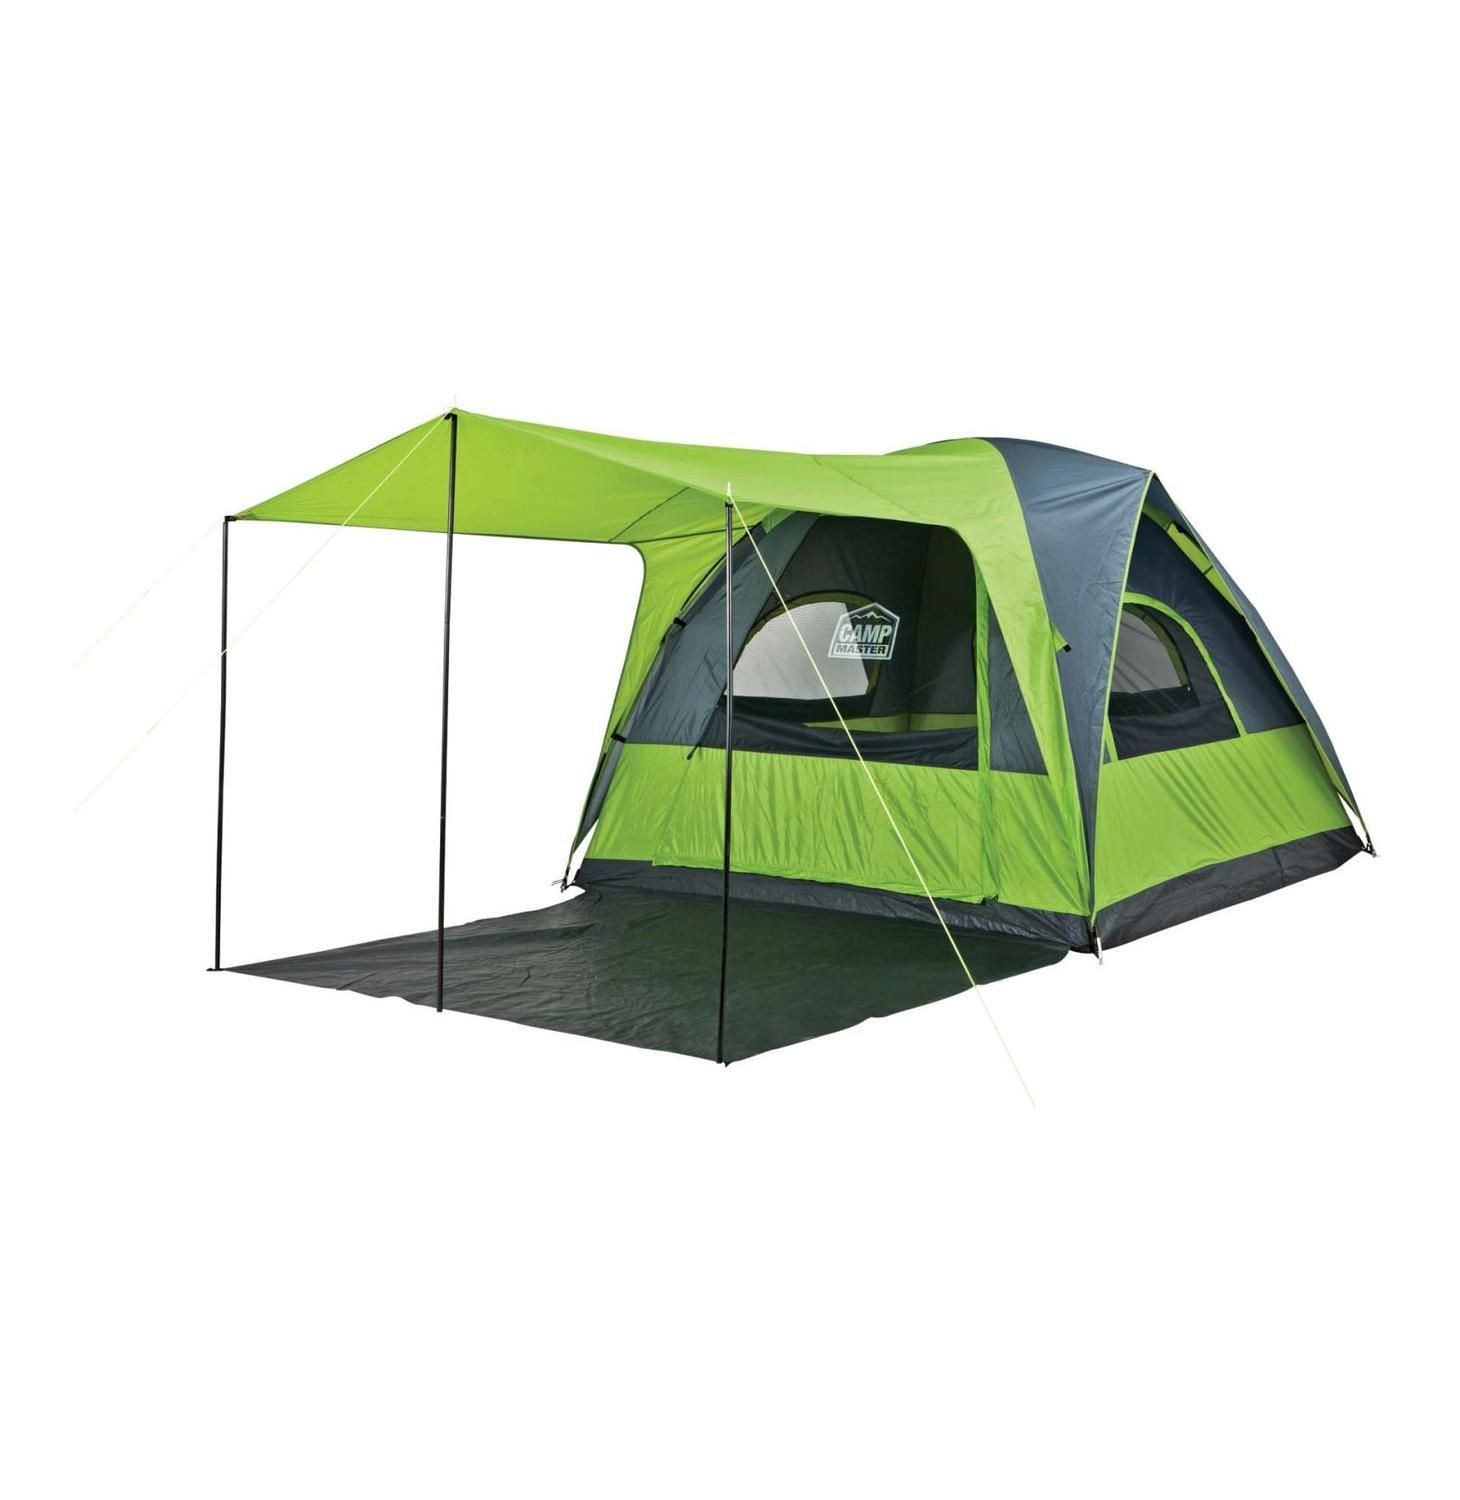 CAMPMASTER C& Dome 410 Tent | Makro Online  sc 1 st  Pinterest & CAMPMASTER Camp Dome 410 Tent | Makro Online | Camping and all ...